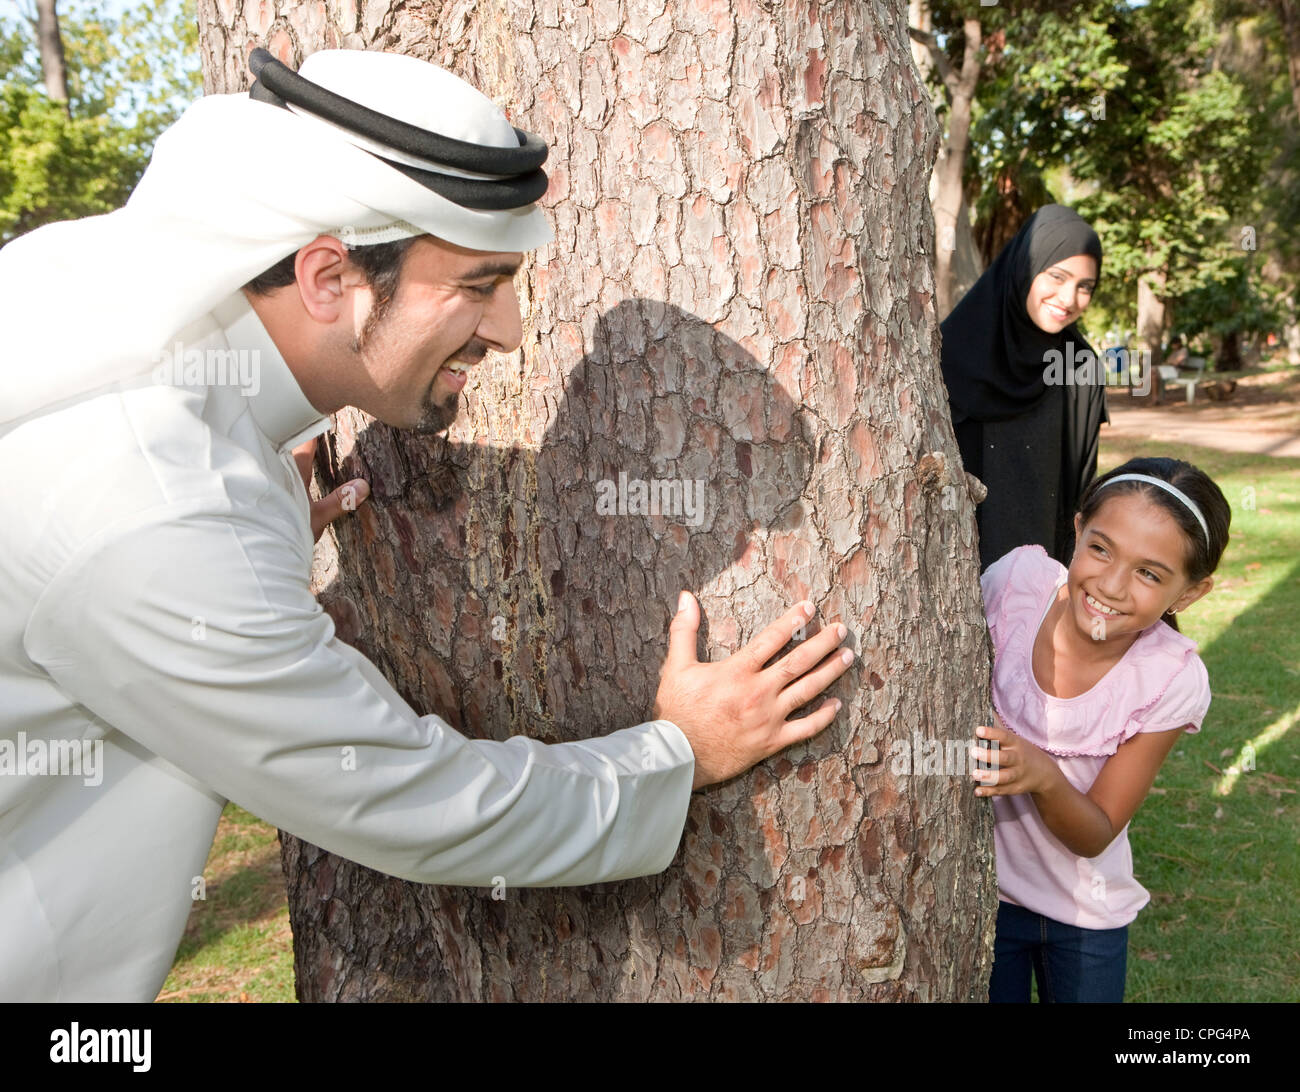 Arab family playing hide and seek in the park. - Stock Image